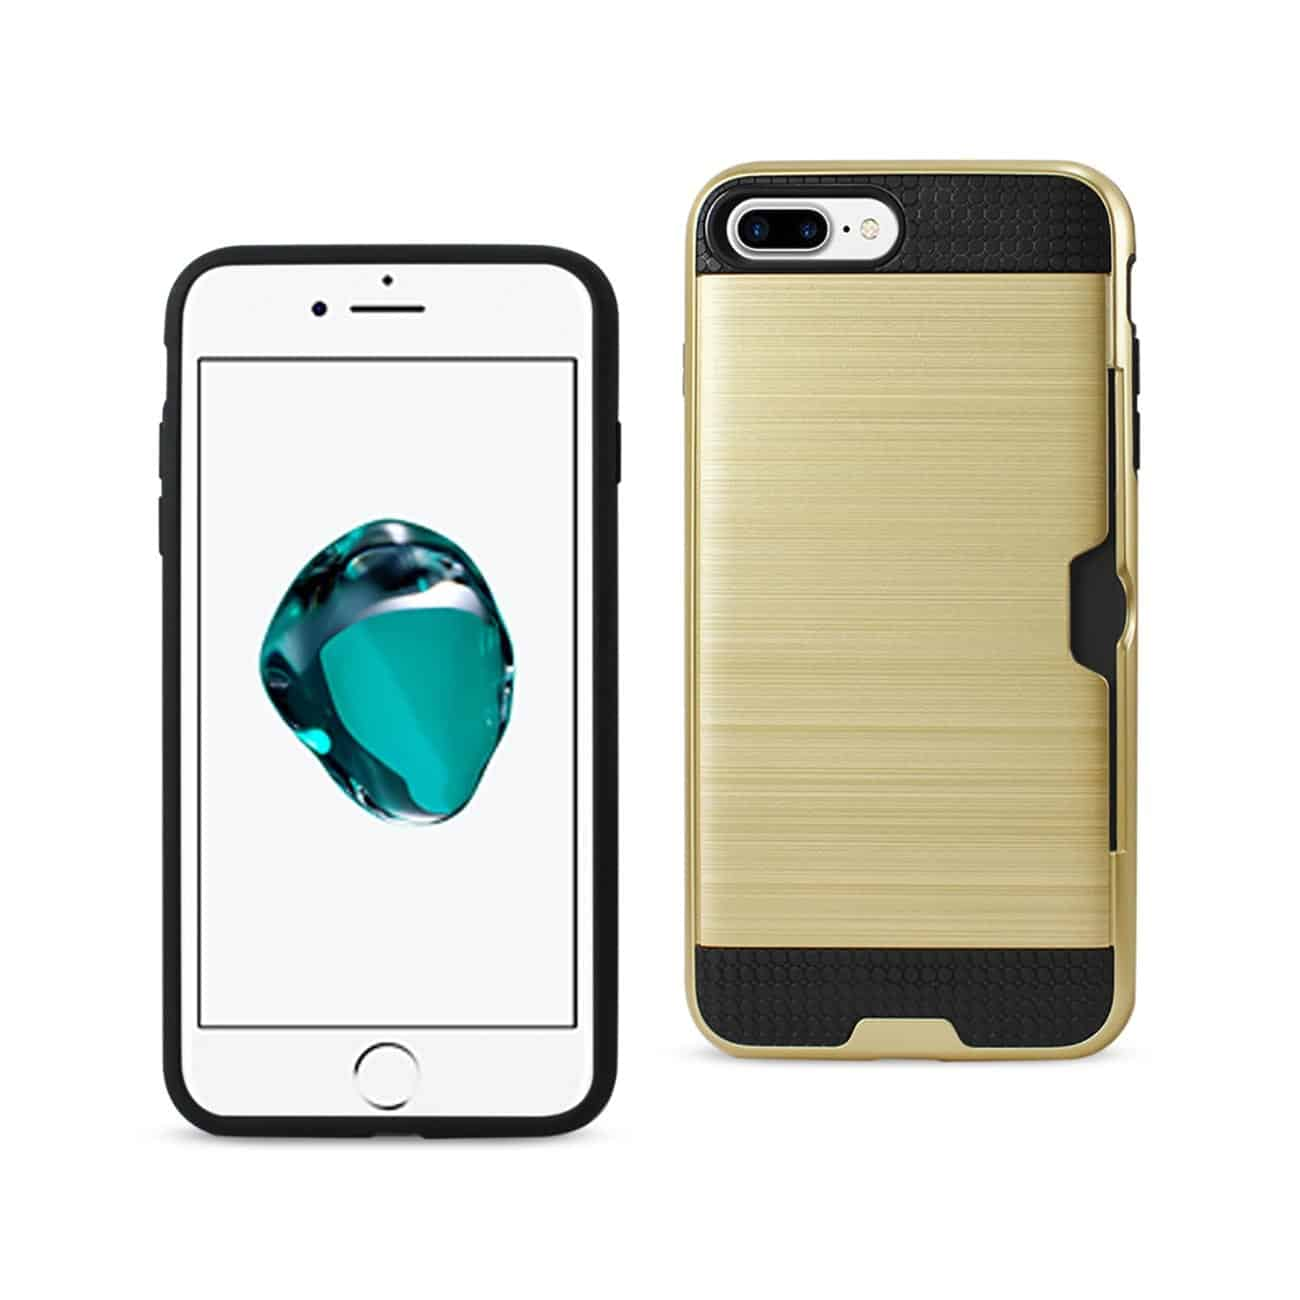 IPHONE 7 PLUS SLIM ARMOR HYBRID CASE WITH CARD HOLDER IN GOLD